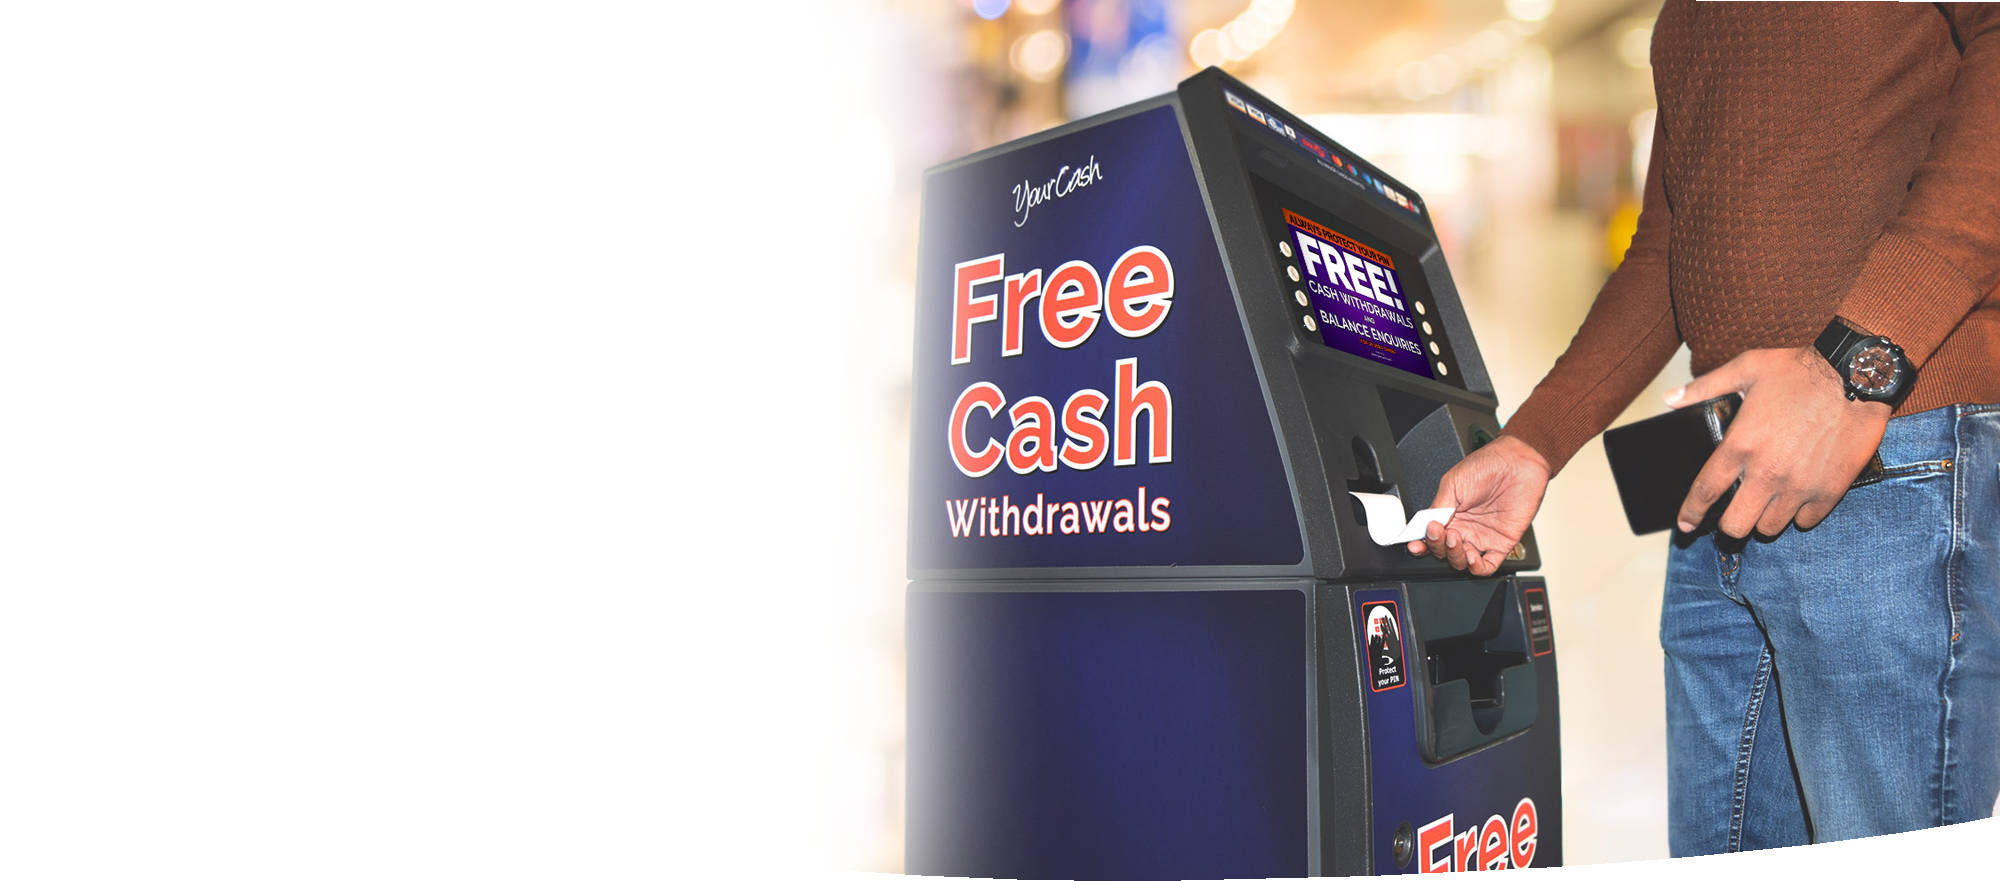 Would you like to find out if your business qualifies for a FREE YourCash ATM?